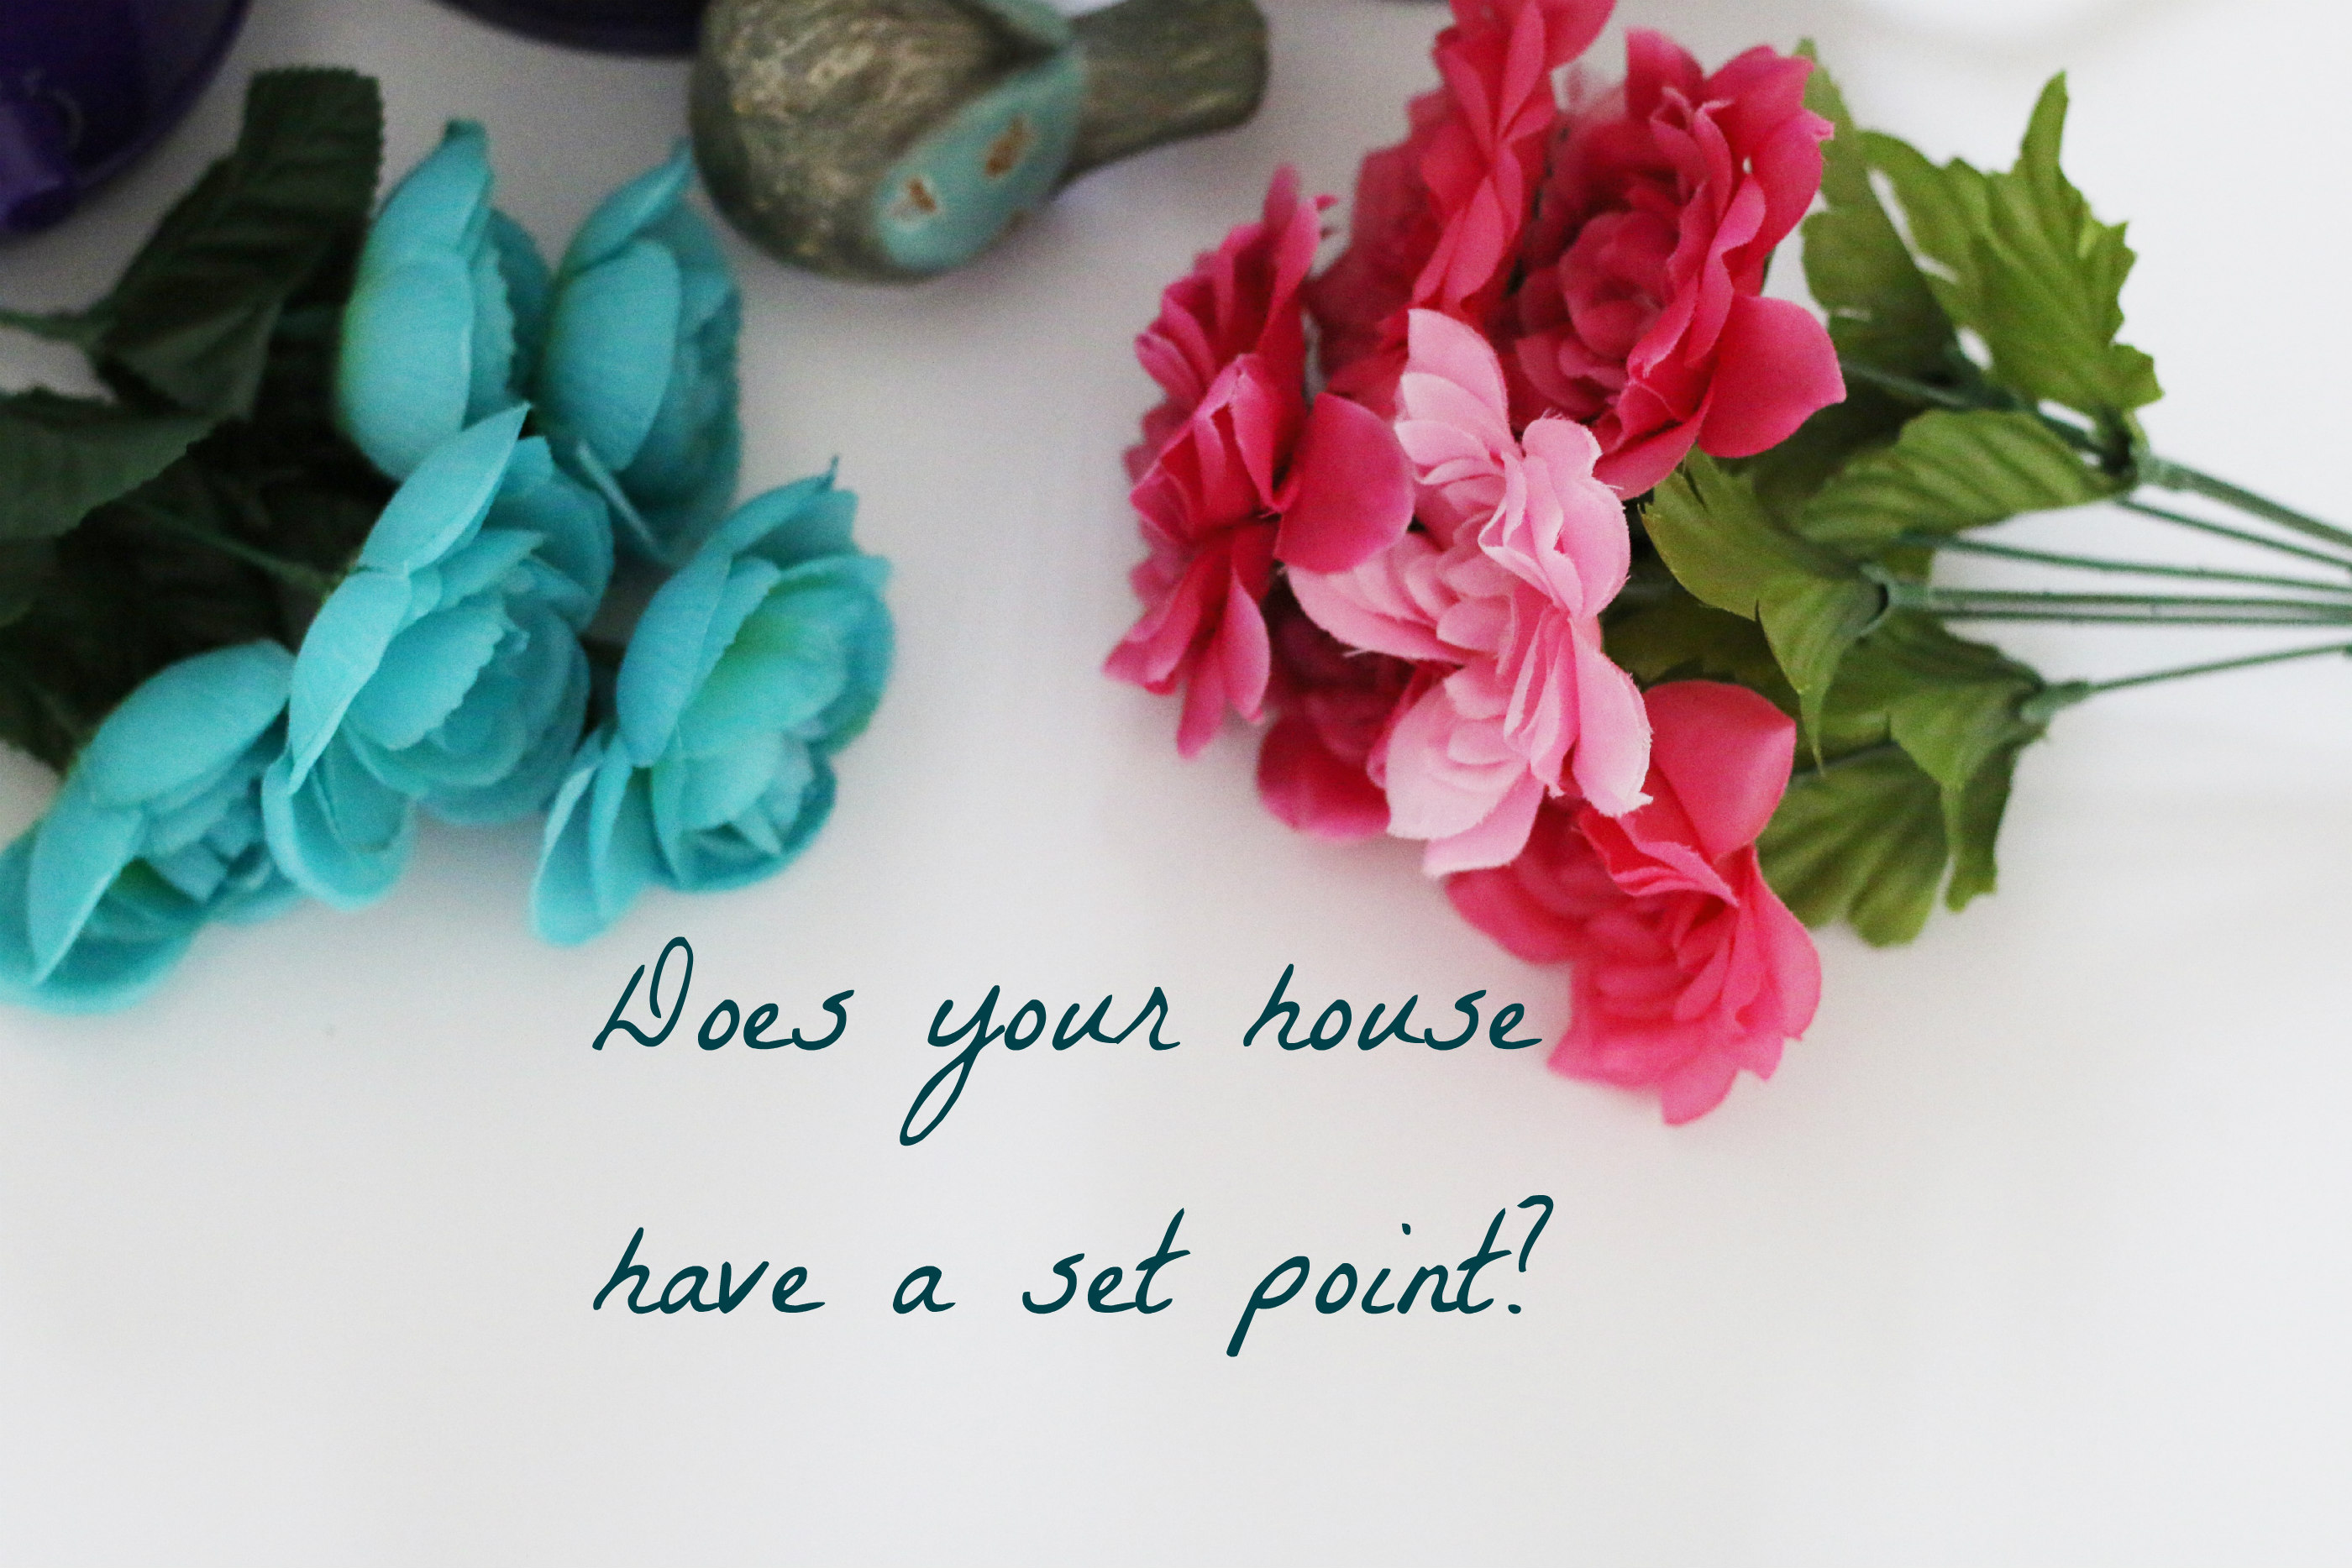 Does your house have a set point?